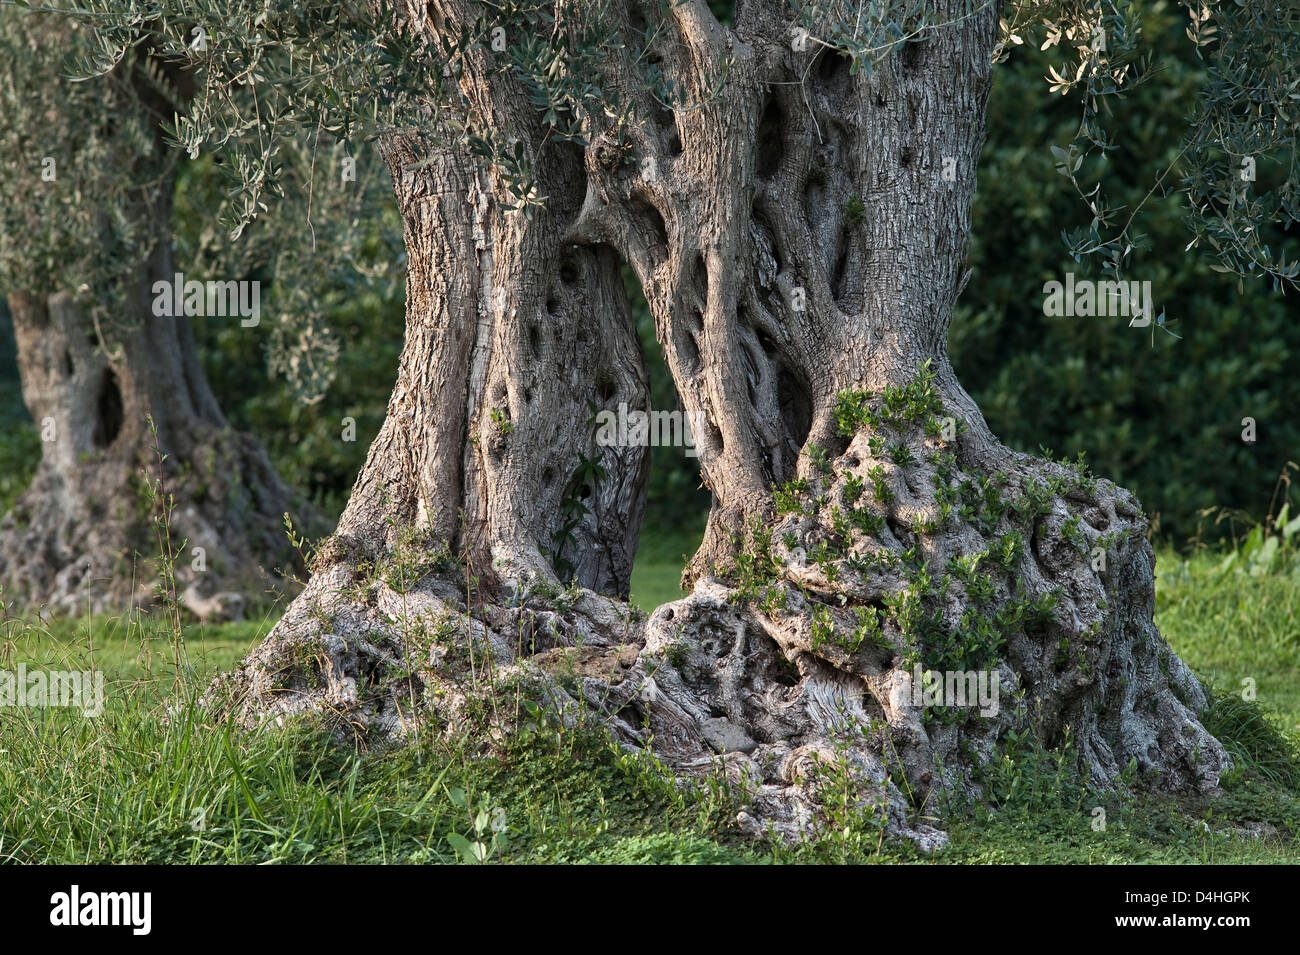 Sicily, Italy. The wrinkled trunk of an ancient olive tree (Olea europaea). Two trees have grown from a single stock, - Stock Image